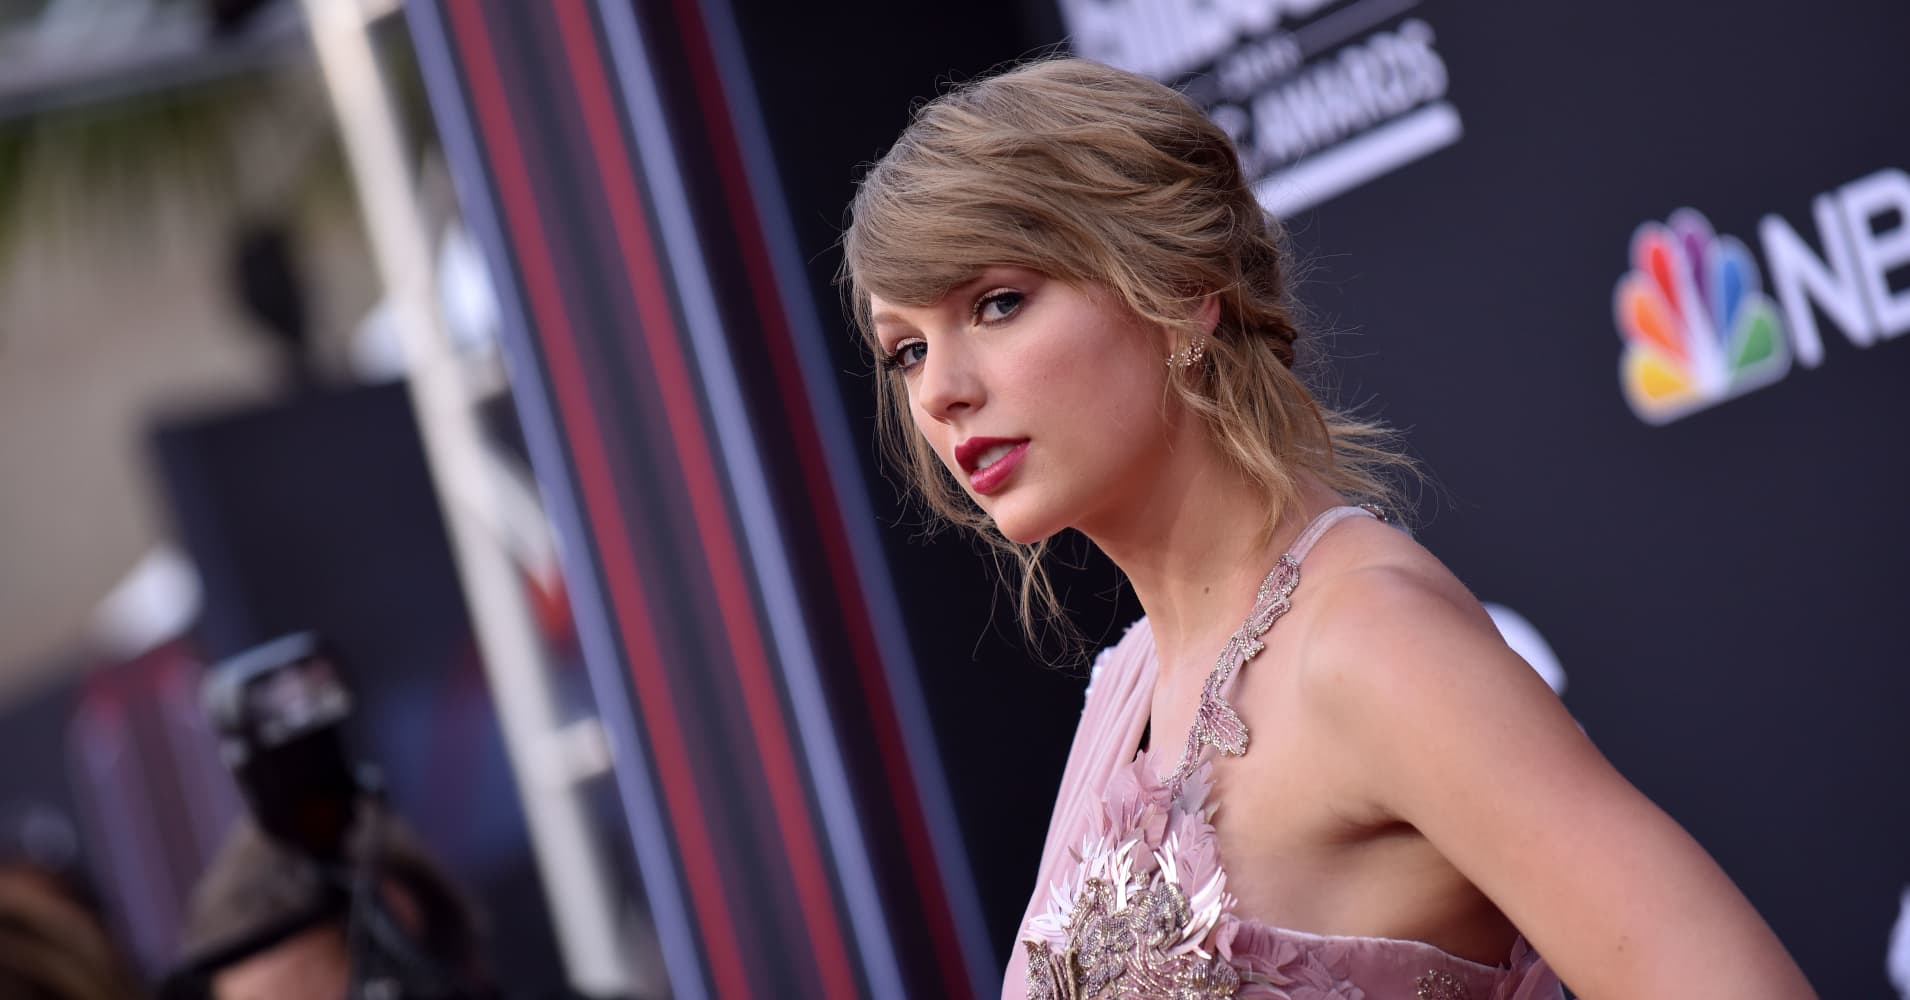 Voter registrations skyrocket after Taylor Swift's get-out-the-vote push